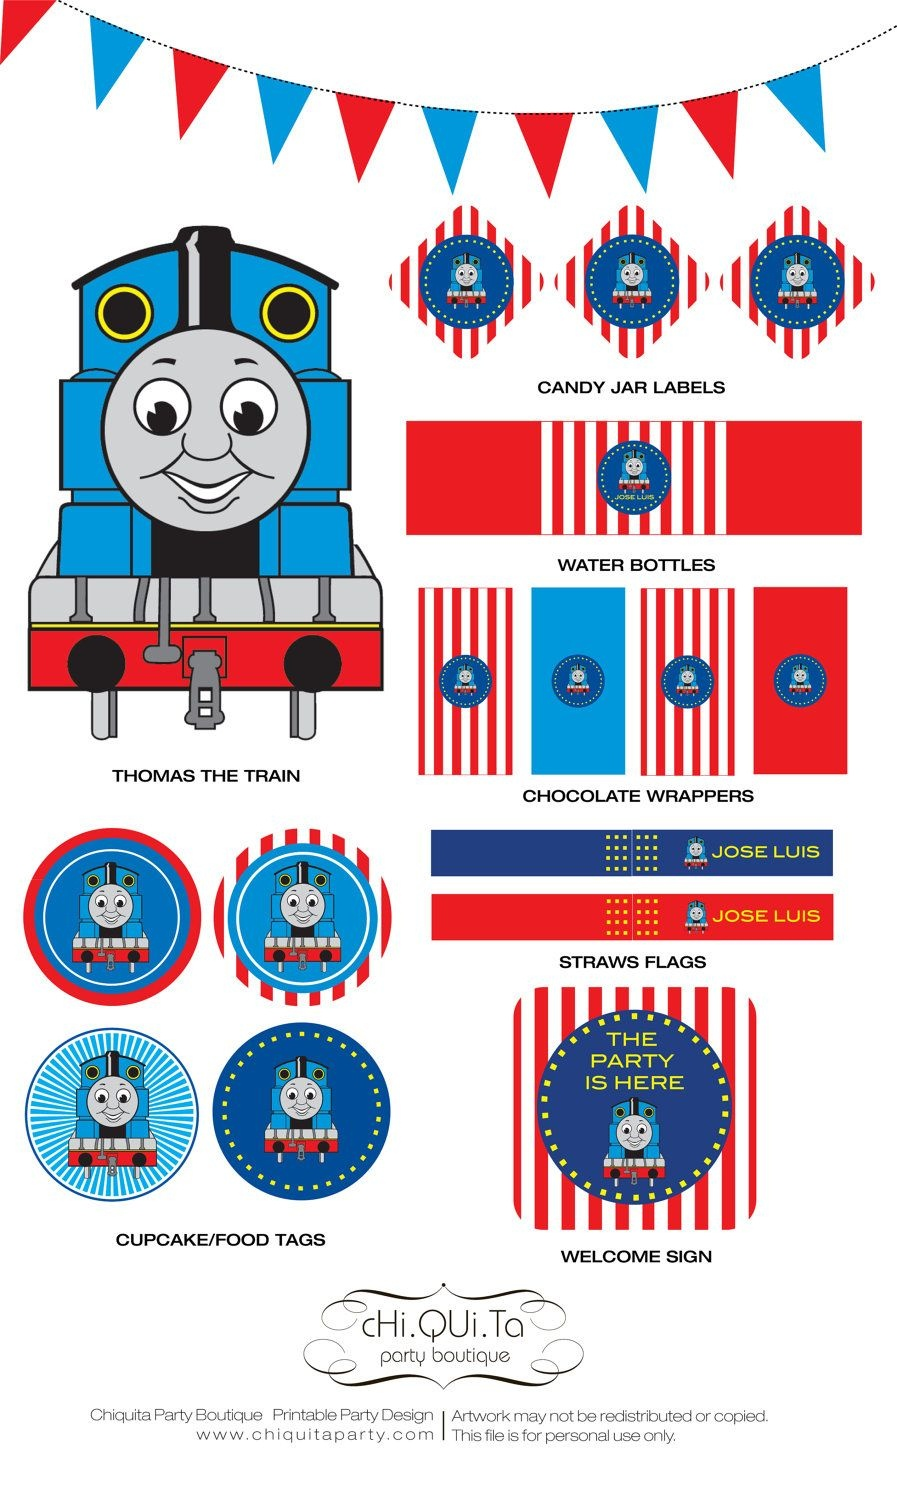 Printable Thoma's The Train Birthday Party Pdfchiquitapb - Free Printable Thomas The Train Cupcake Toppers